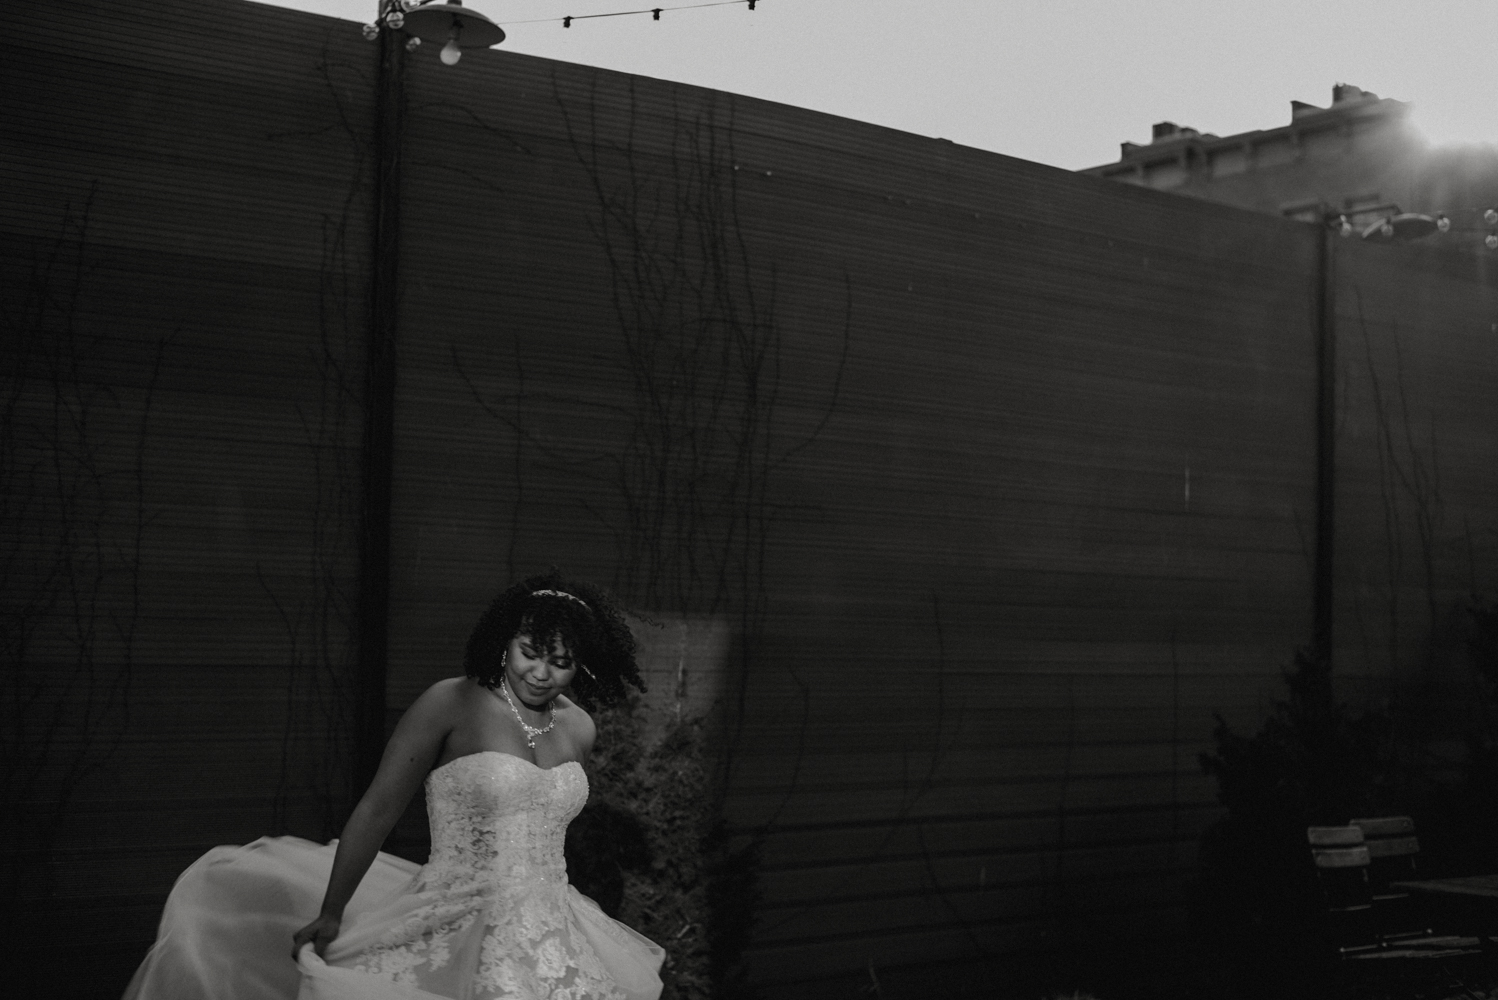 Green_building_wedding_photographer_brooklyn_newyork_ny-79.jpg